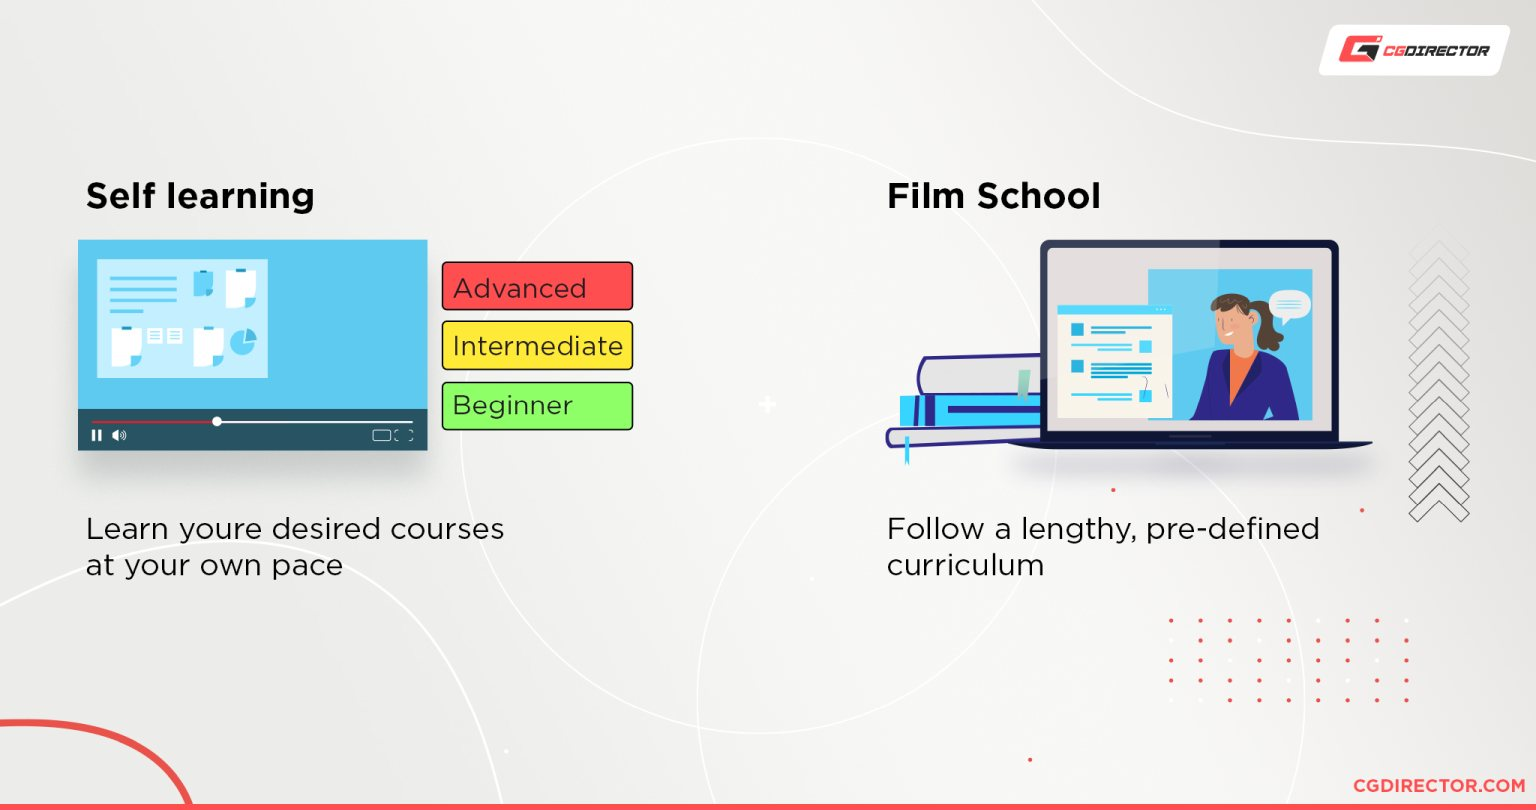 Progression and time investment while self-learning and attending film school